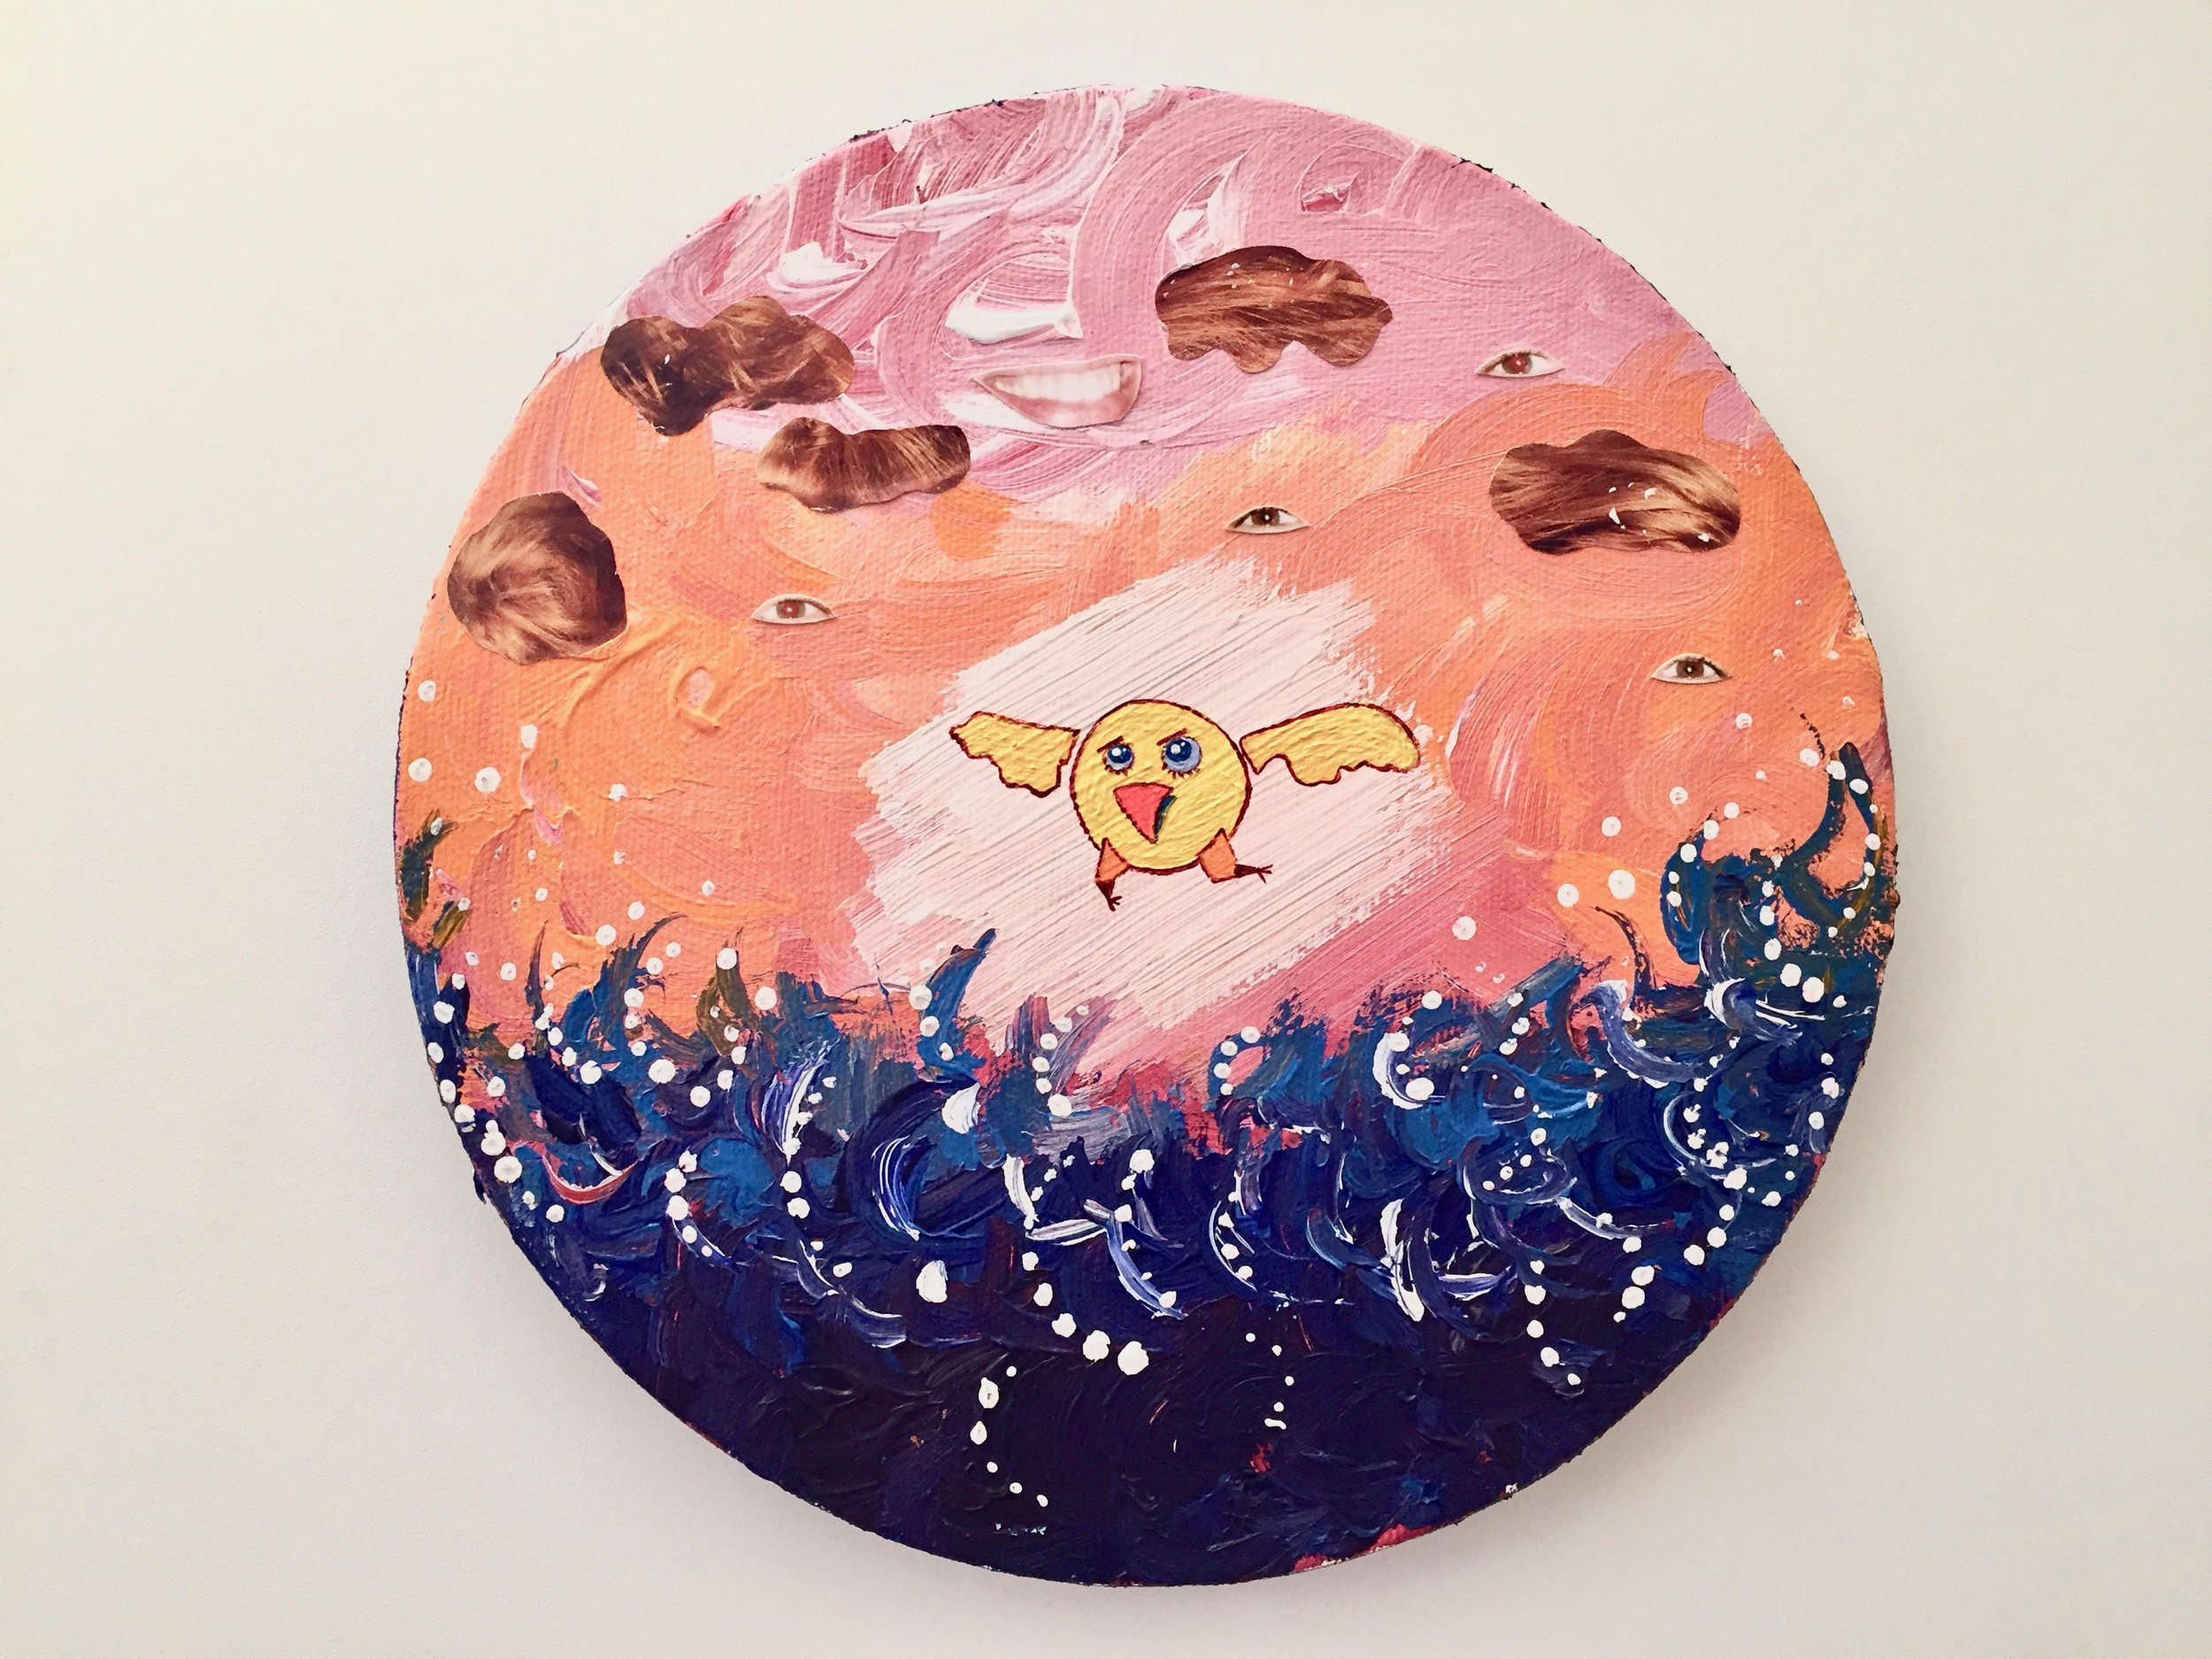 Greetings from apocalyptic bird  2013 Paints and collage on canvas 20cm diameter  More information